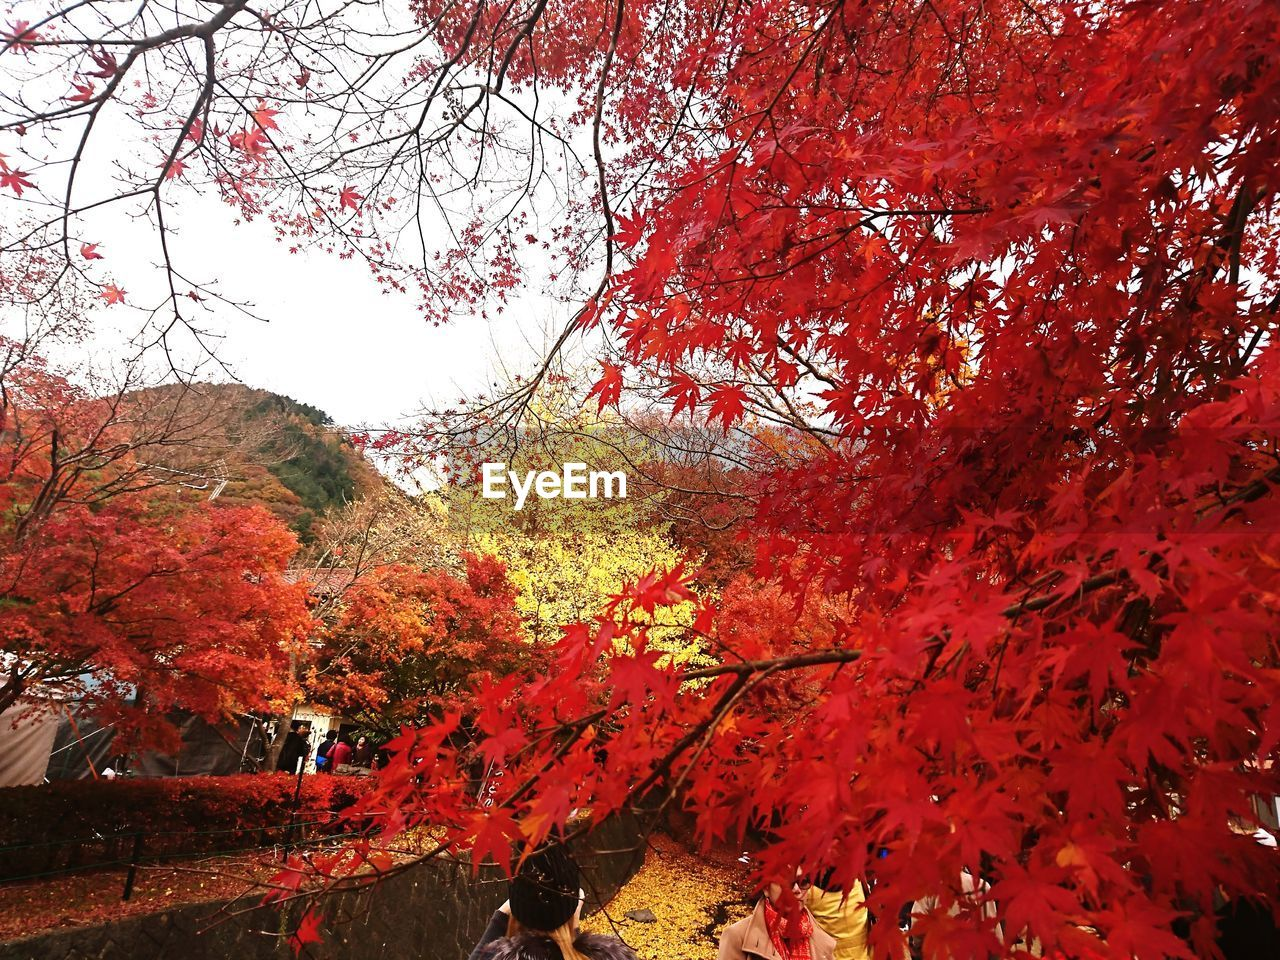 autumn, change, tree, leaf, red, nature, beauty in nature, branch, maple tree, outdoors, day, growth, scenics, tranquility, maple leaf, tranquil scene, forest, no people, sky, maple